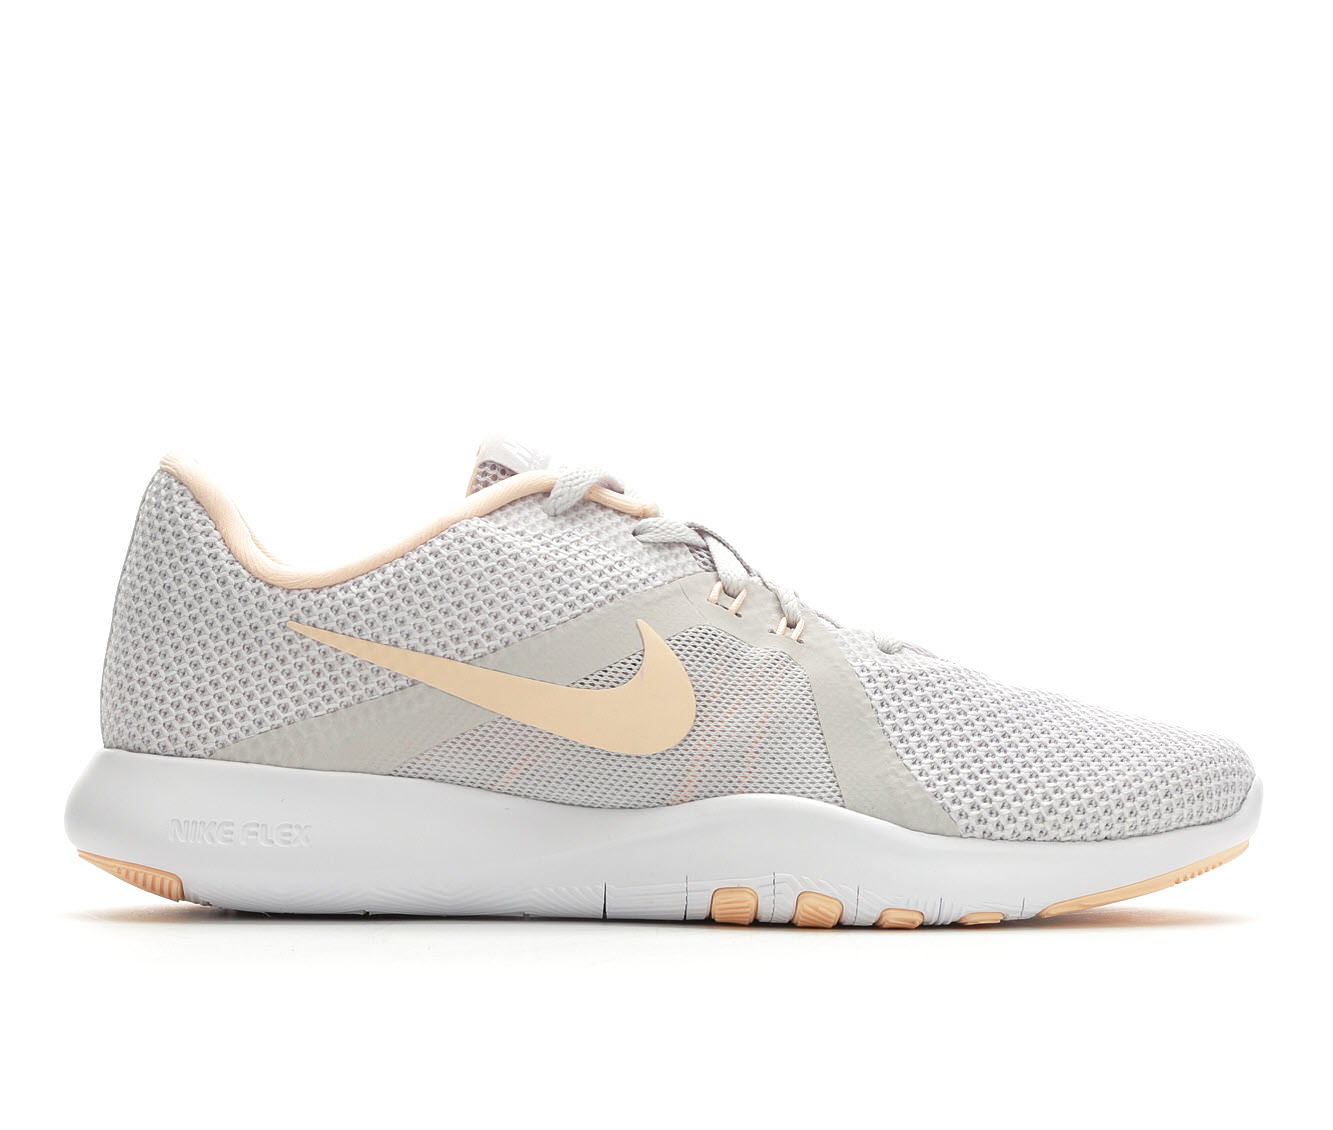 Women's Nike Flex Trainer 8 Training Shoe (Grey - Size 11) 1724212